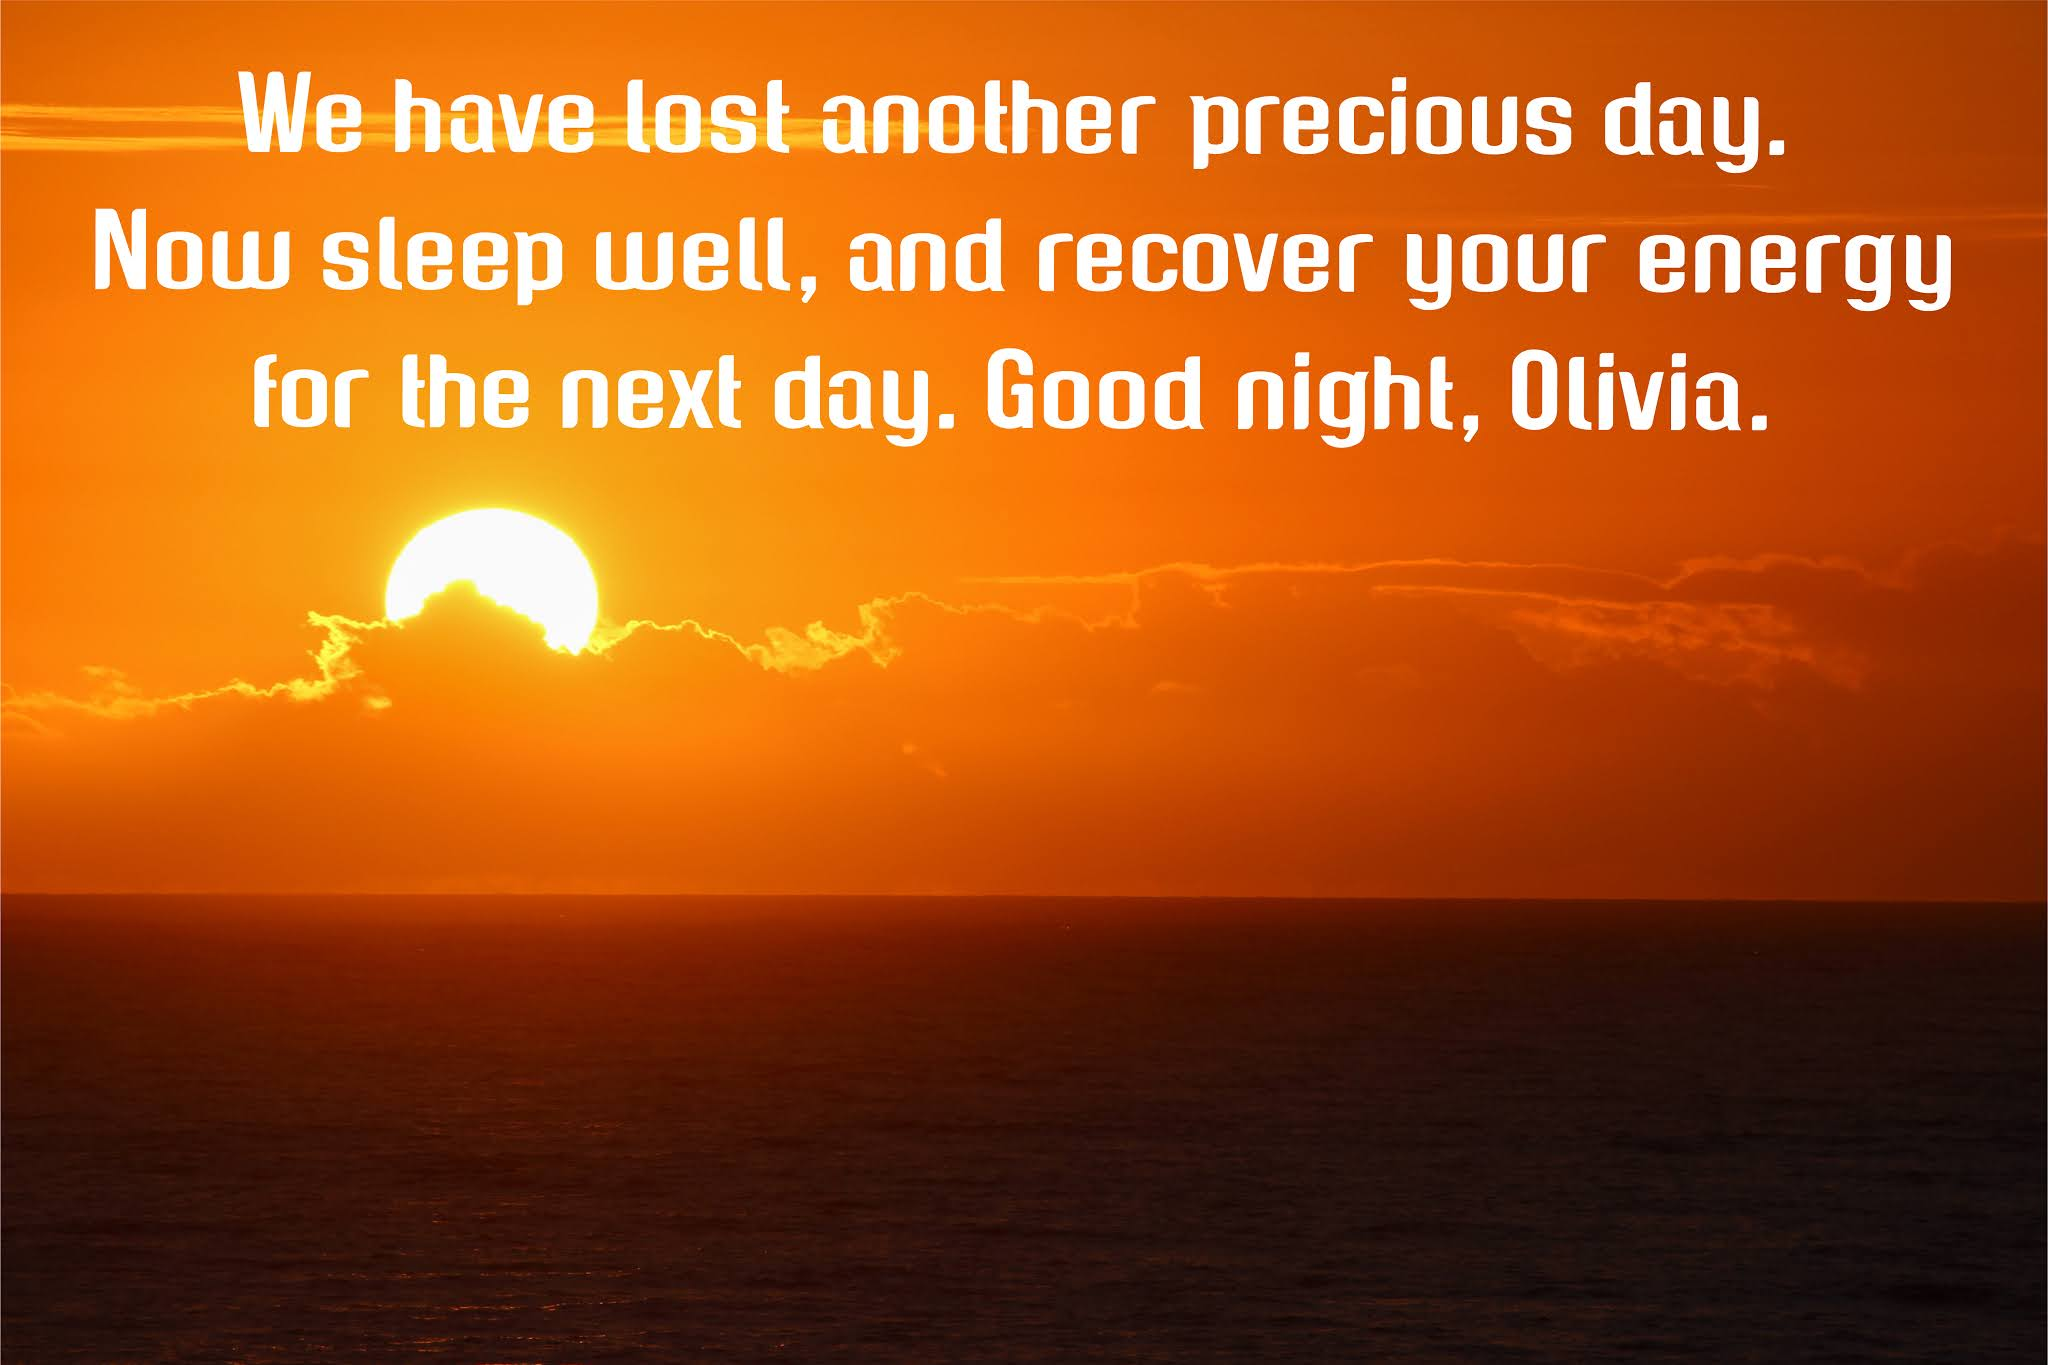 Good night message for a darling friend